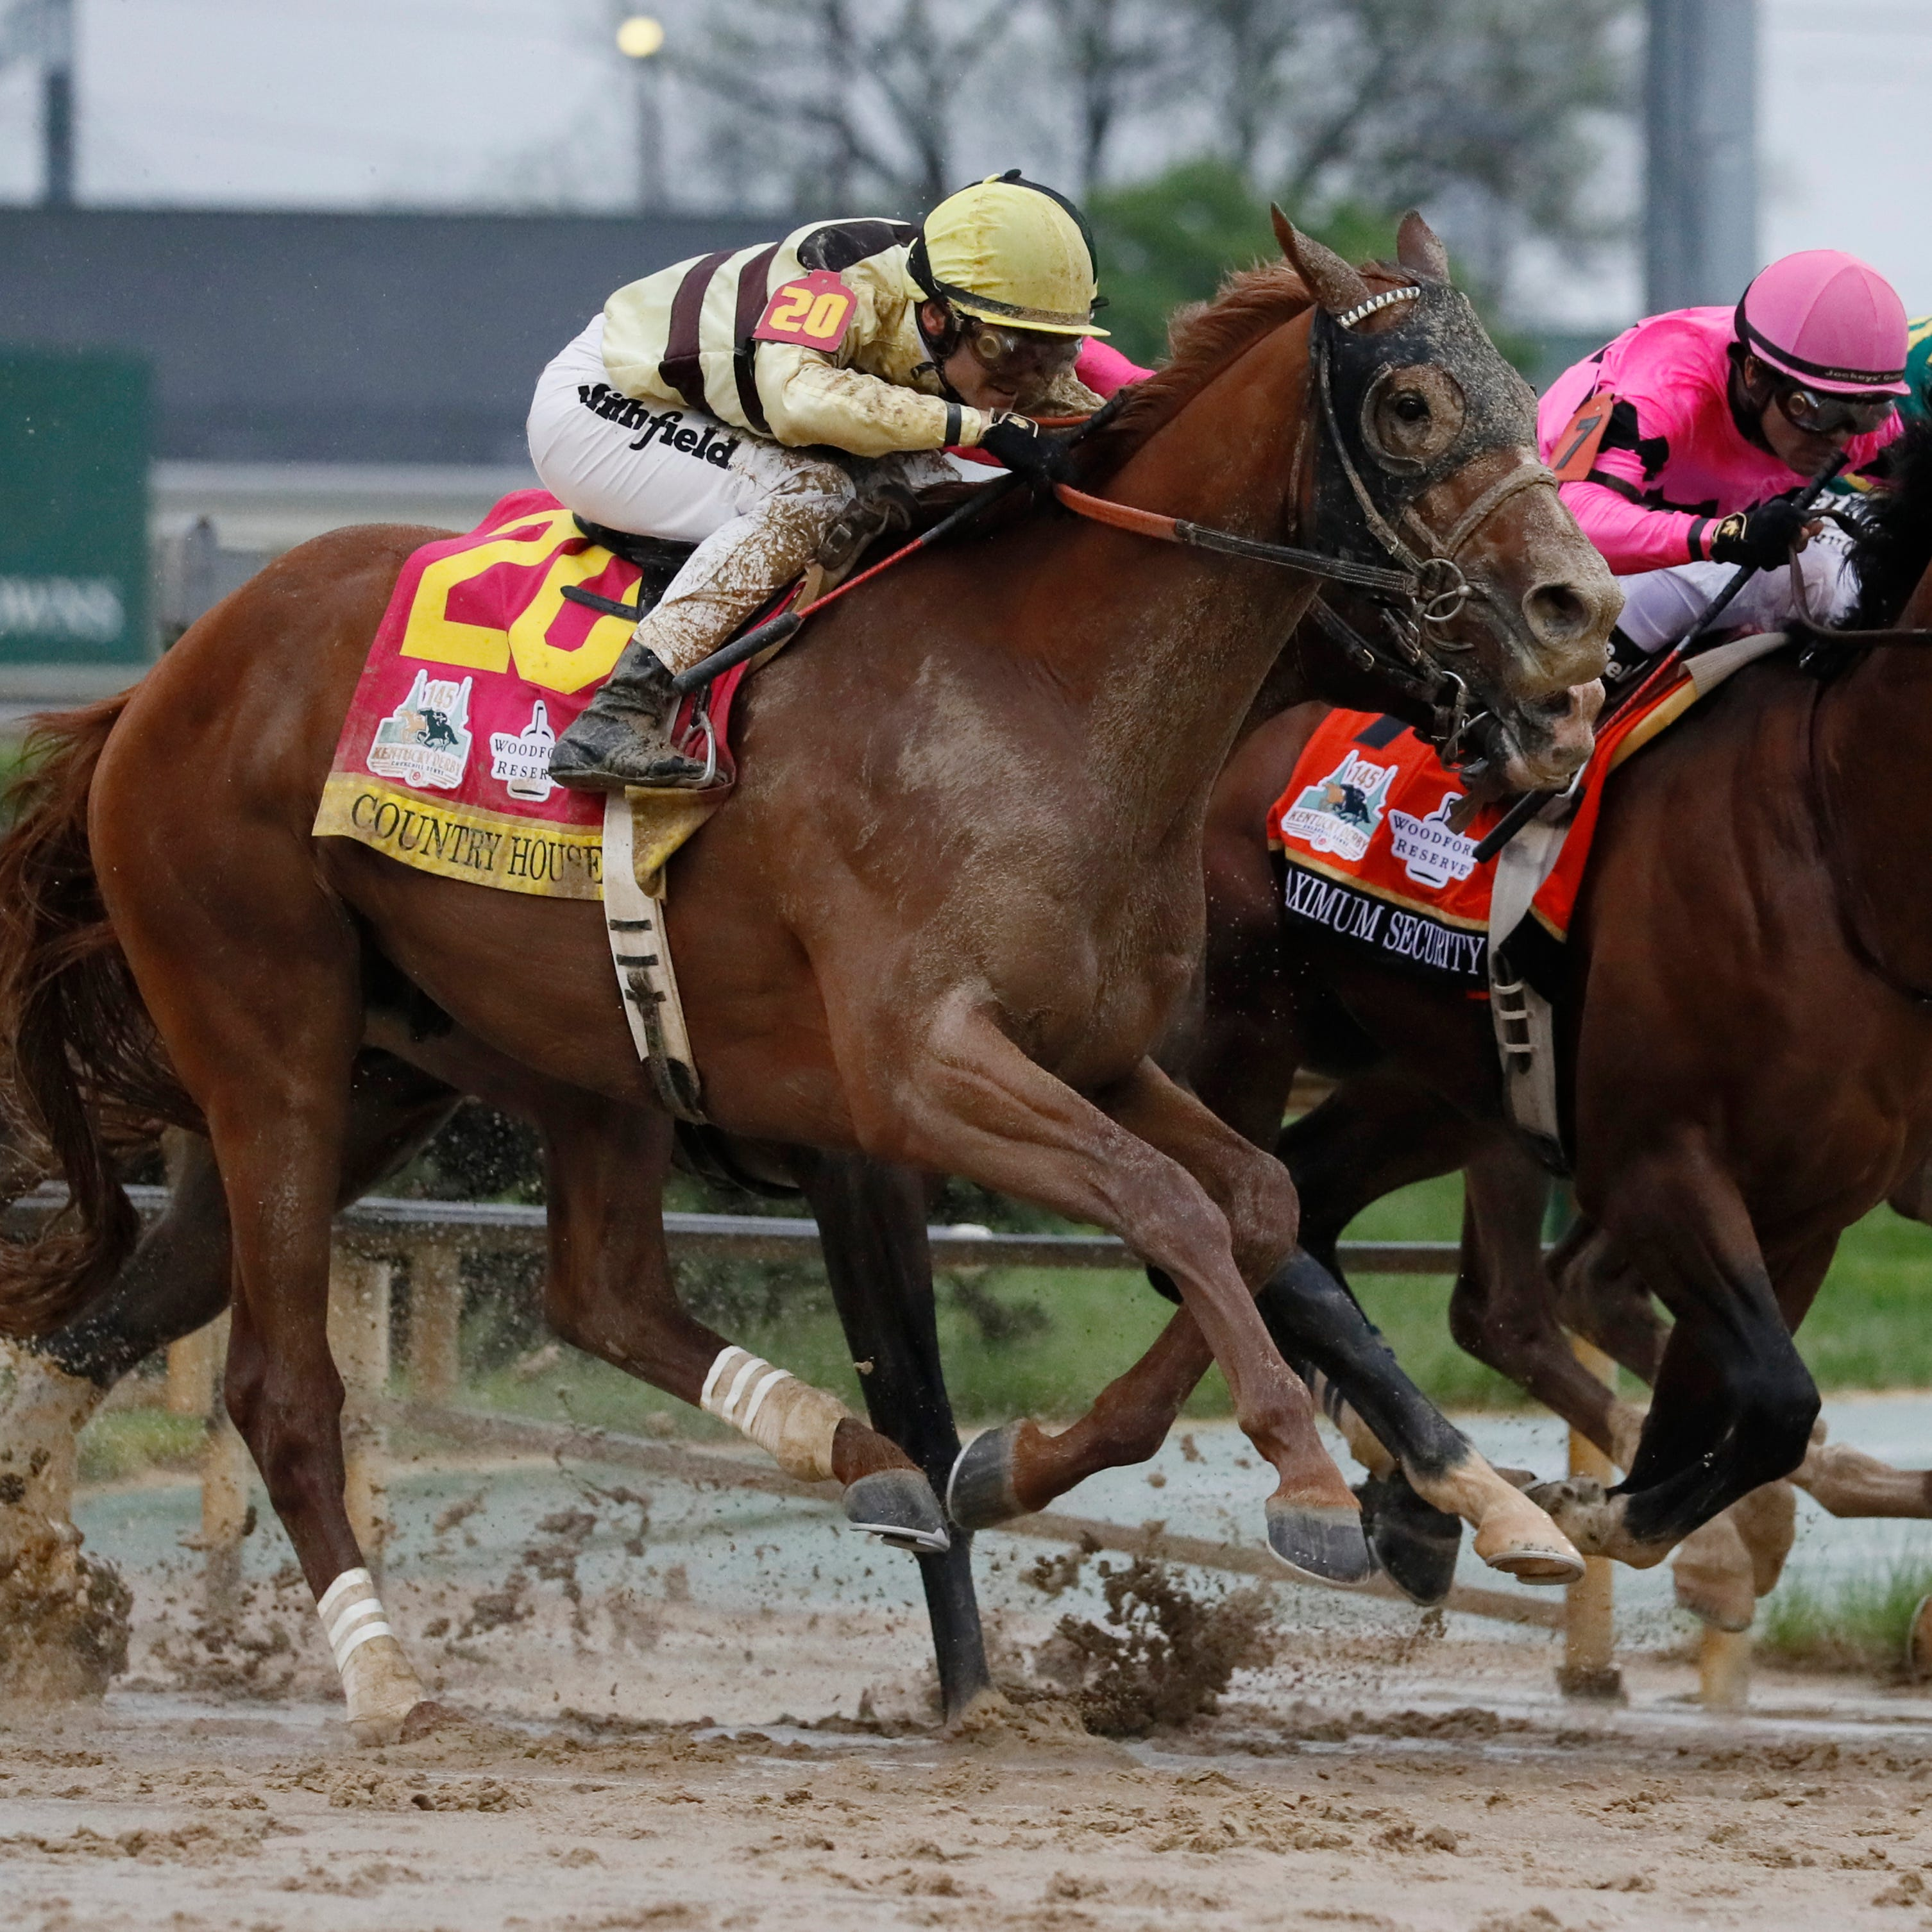 Country House wins the Kentucky Derby; Maximum Security disqualified